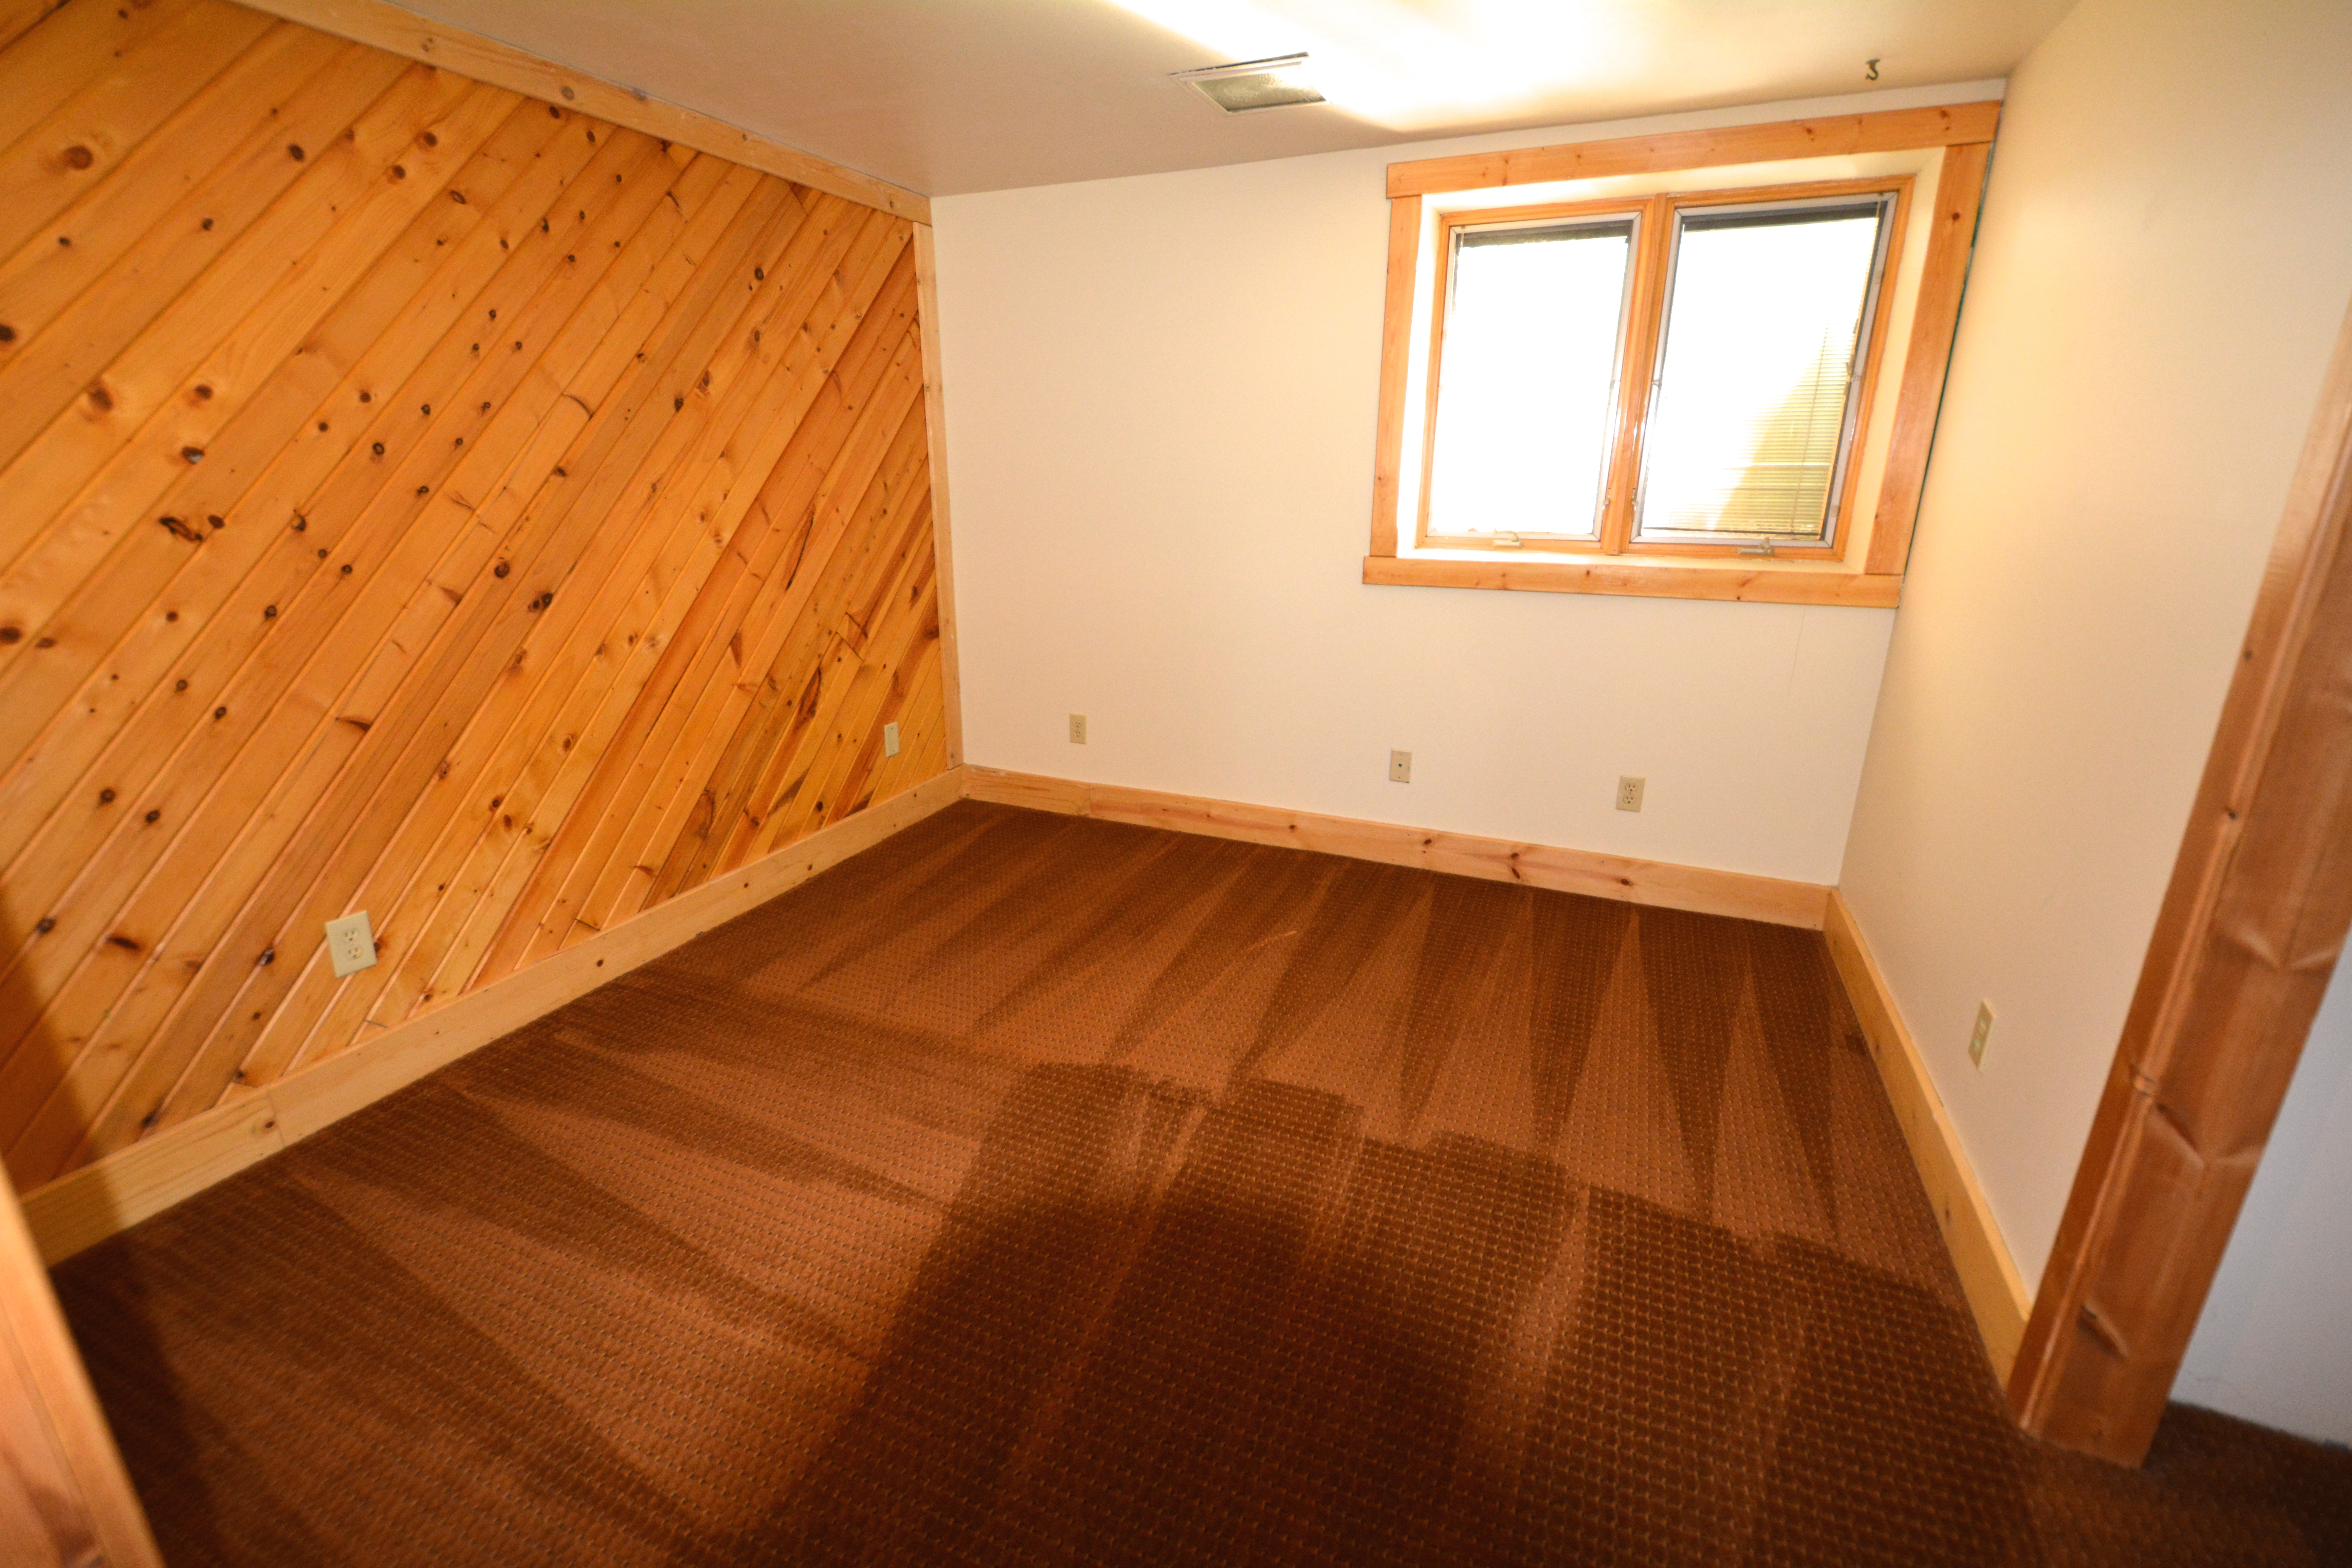 house for rent 222 15th av w menomonie wi 5 br 2 ba close to uw stout basement bedroom bedroom of 5 bedroom house for rent